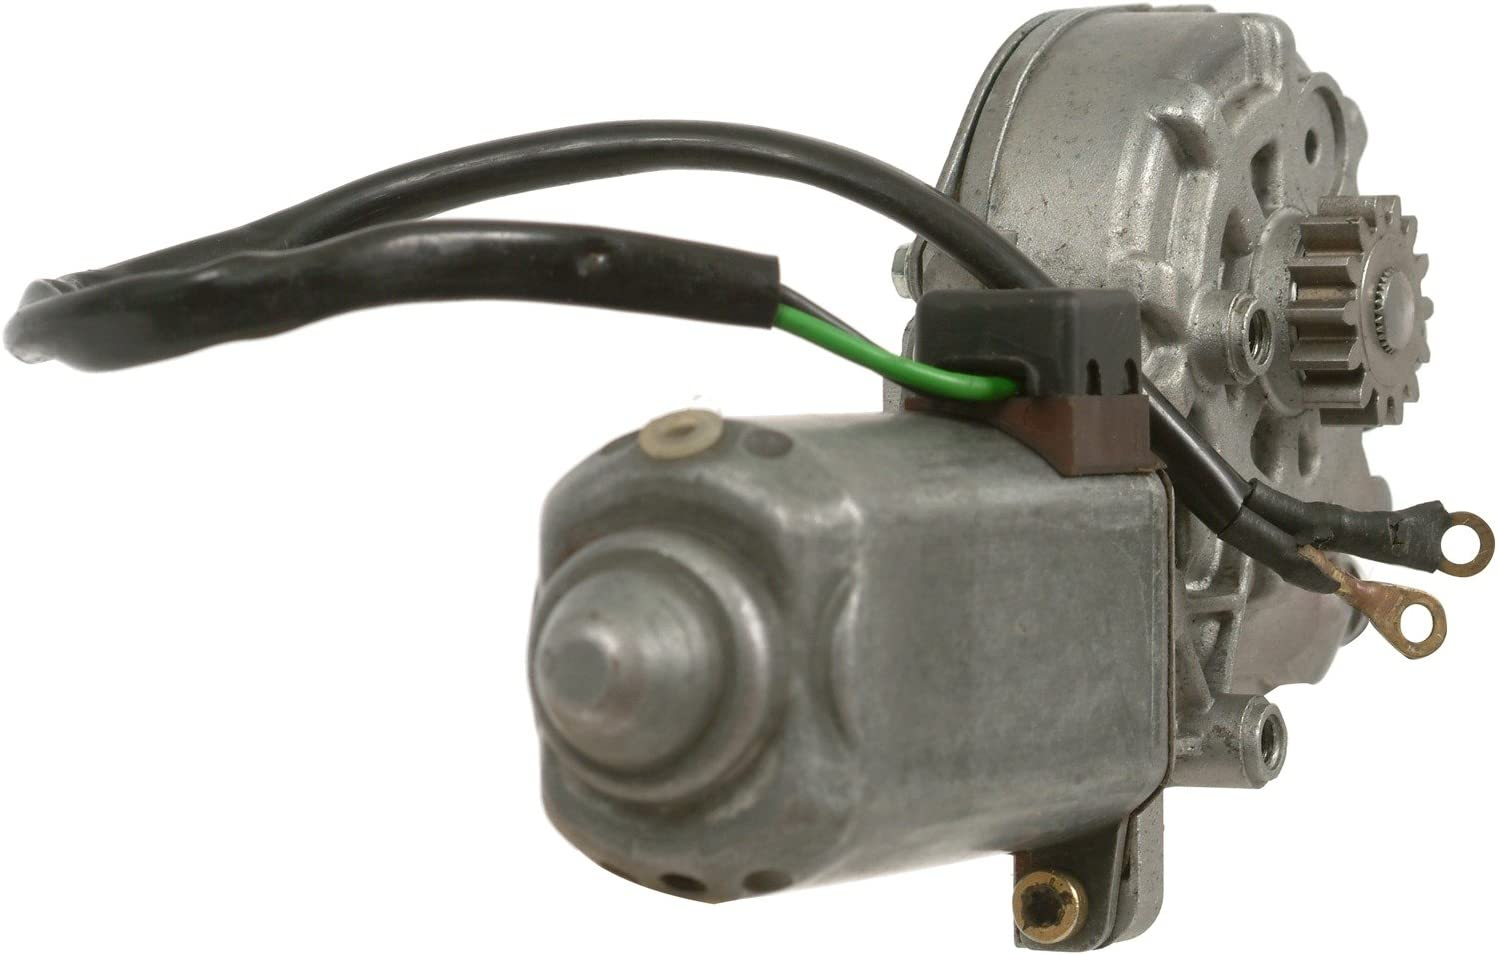 Cardone 47-3493 Remanufactured Import Window Lift Motor